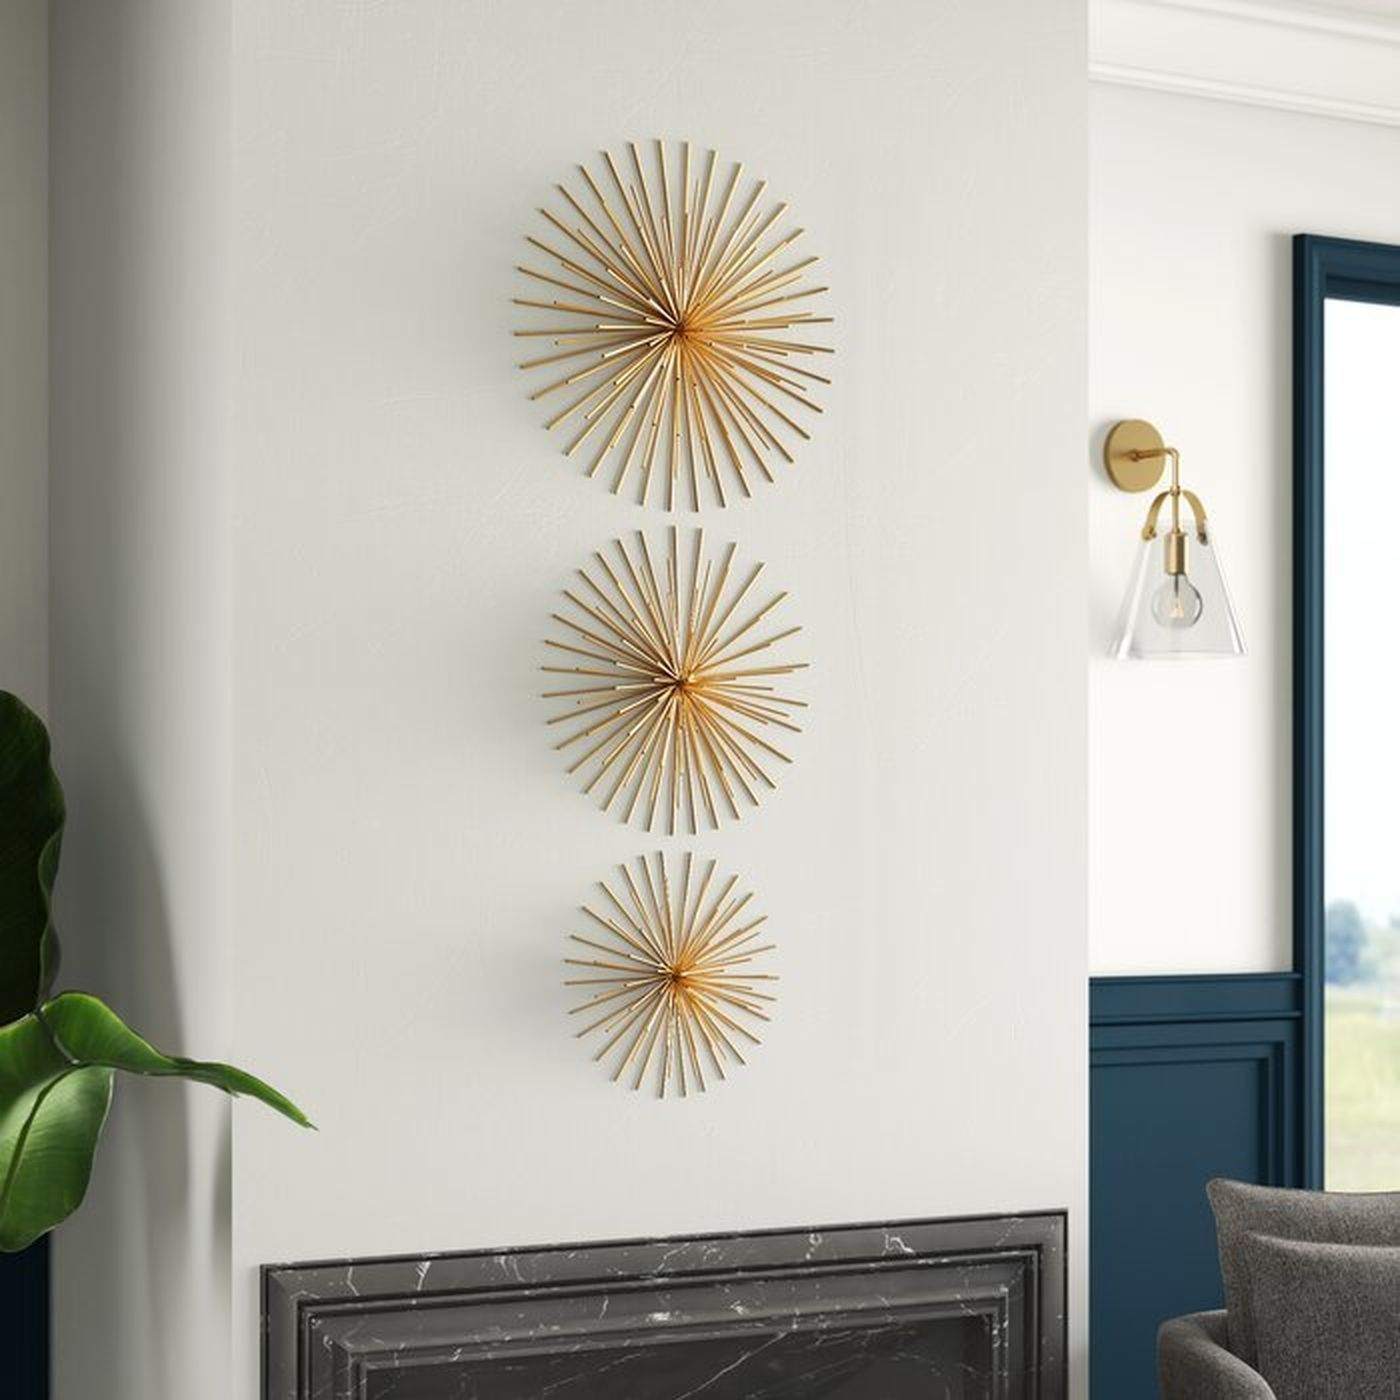 3 Piece Wall Decor Set Wayfair Gold Wall Decor Wall Decor Set Wall Decor